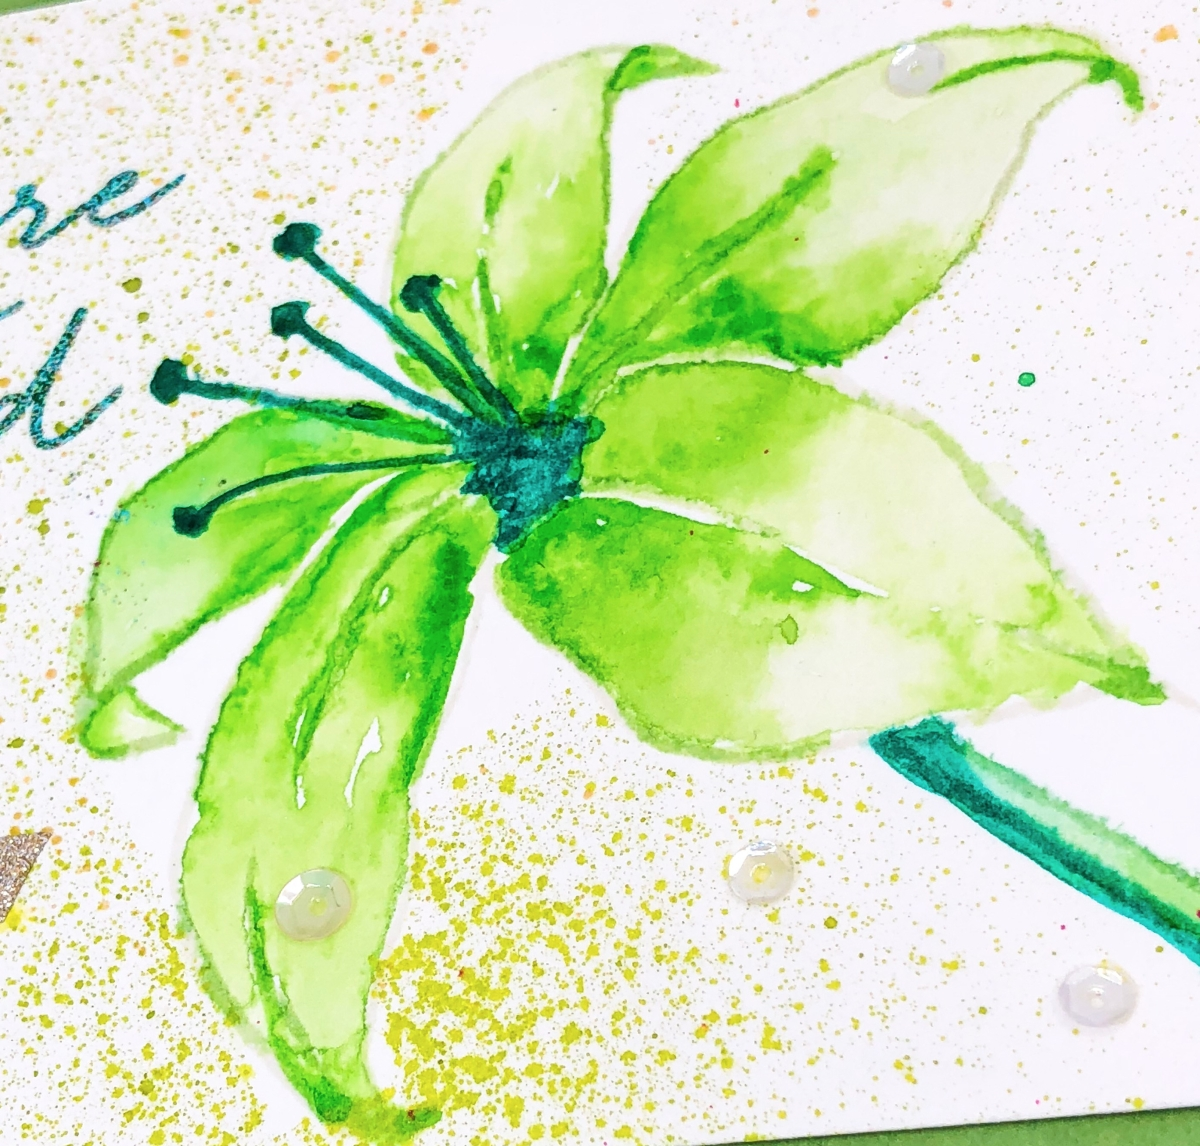 Green Lilly